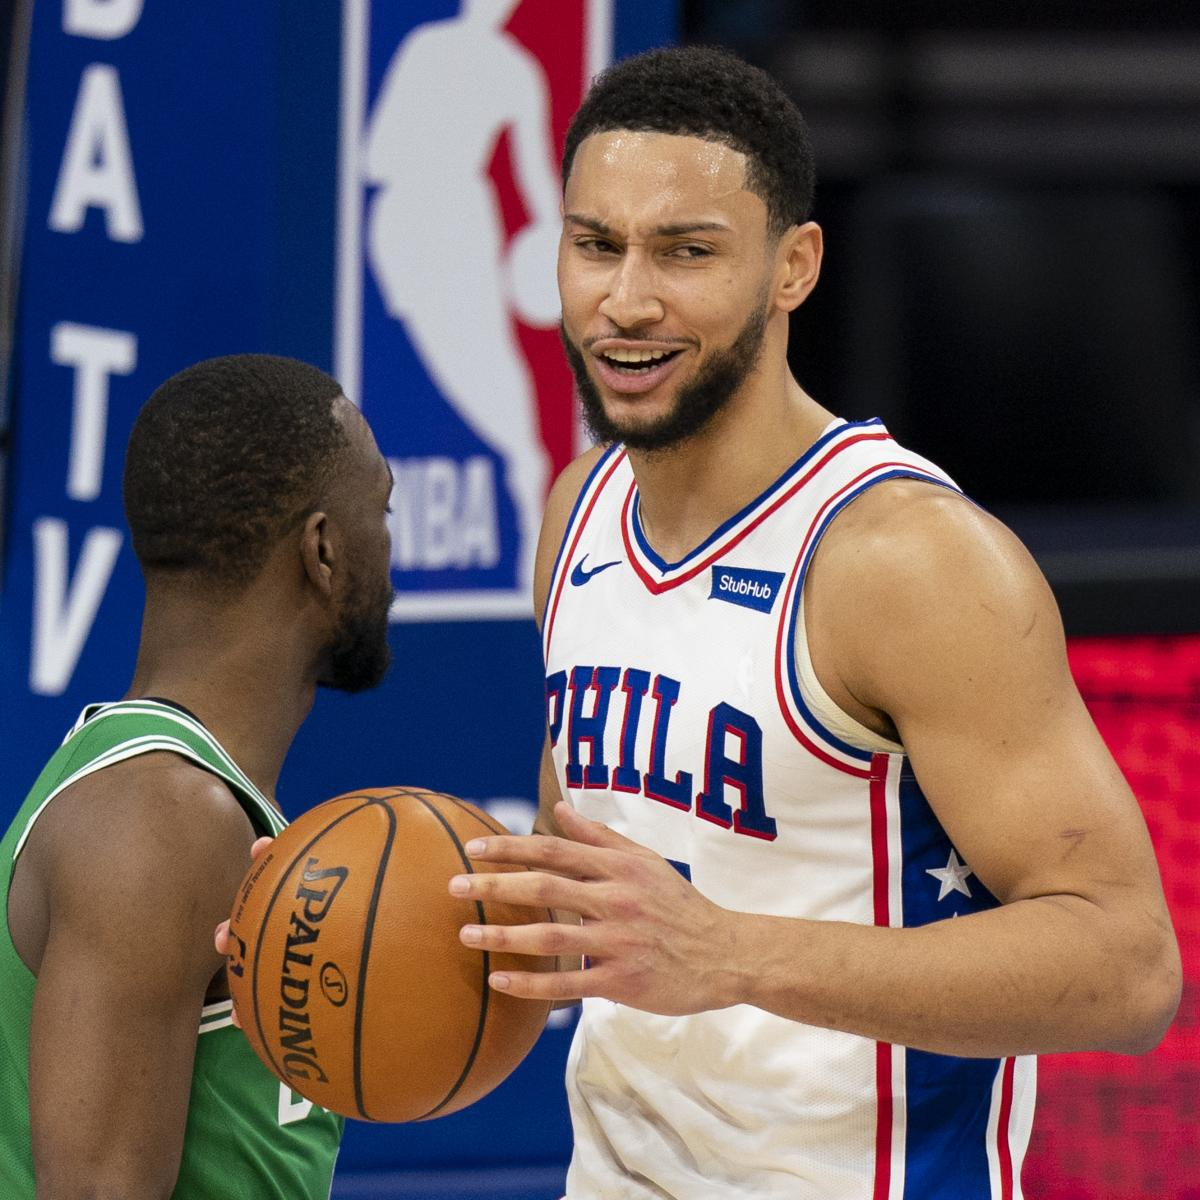 76ers' Ben Simmons: 'I Don't Give a F--k' About Criticism on Social Media